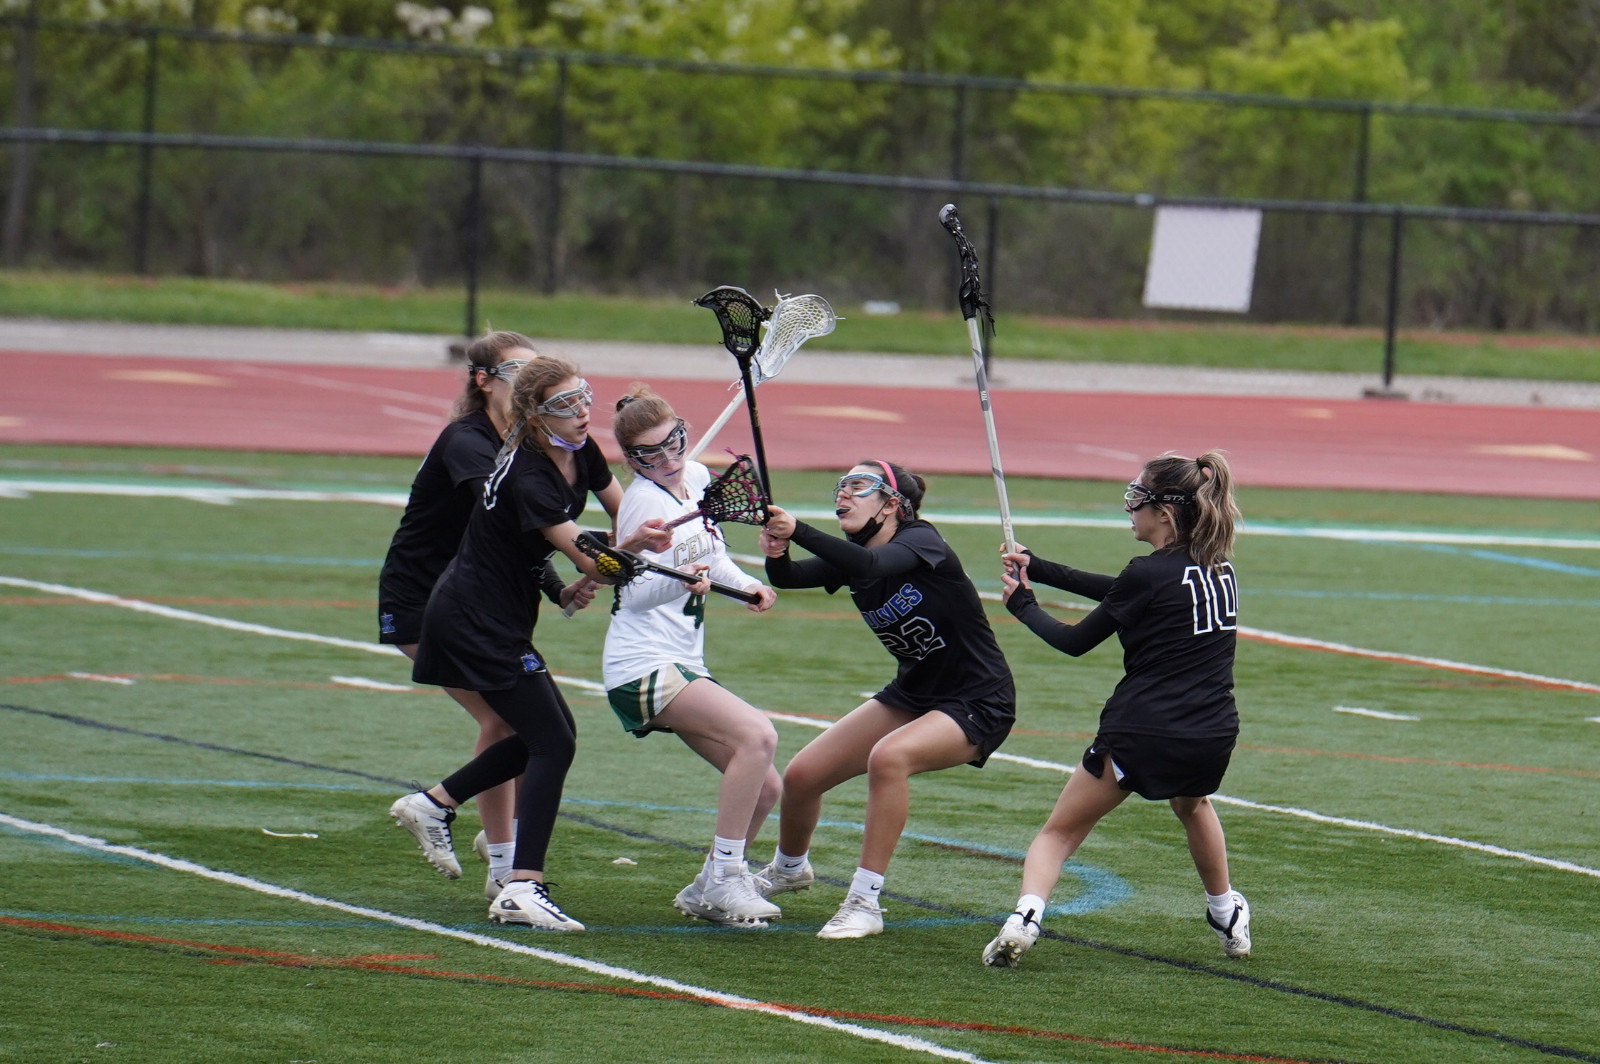 Girls JV Lax vs. Worthington Kilbourne (photos) 4/15